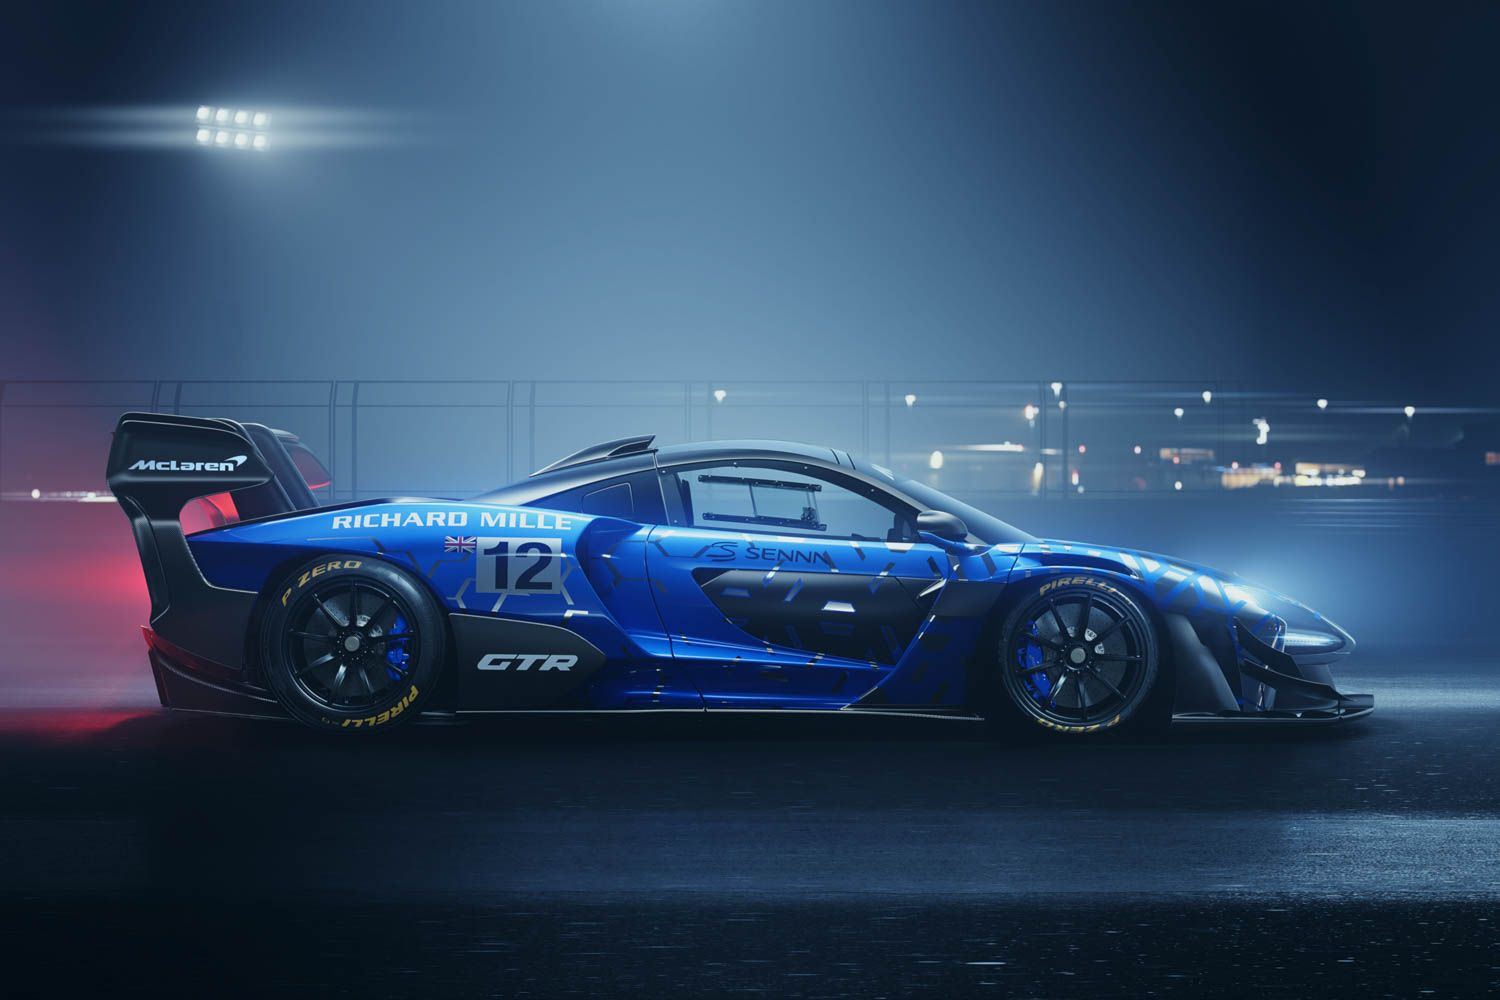 McLaren Senna GTR side profile